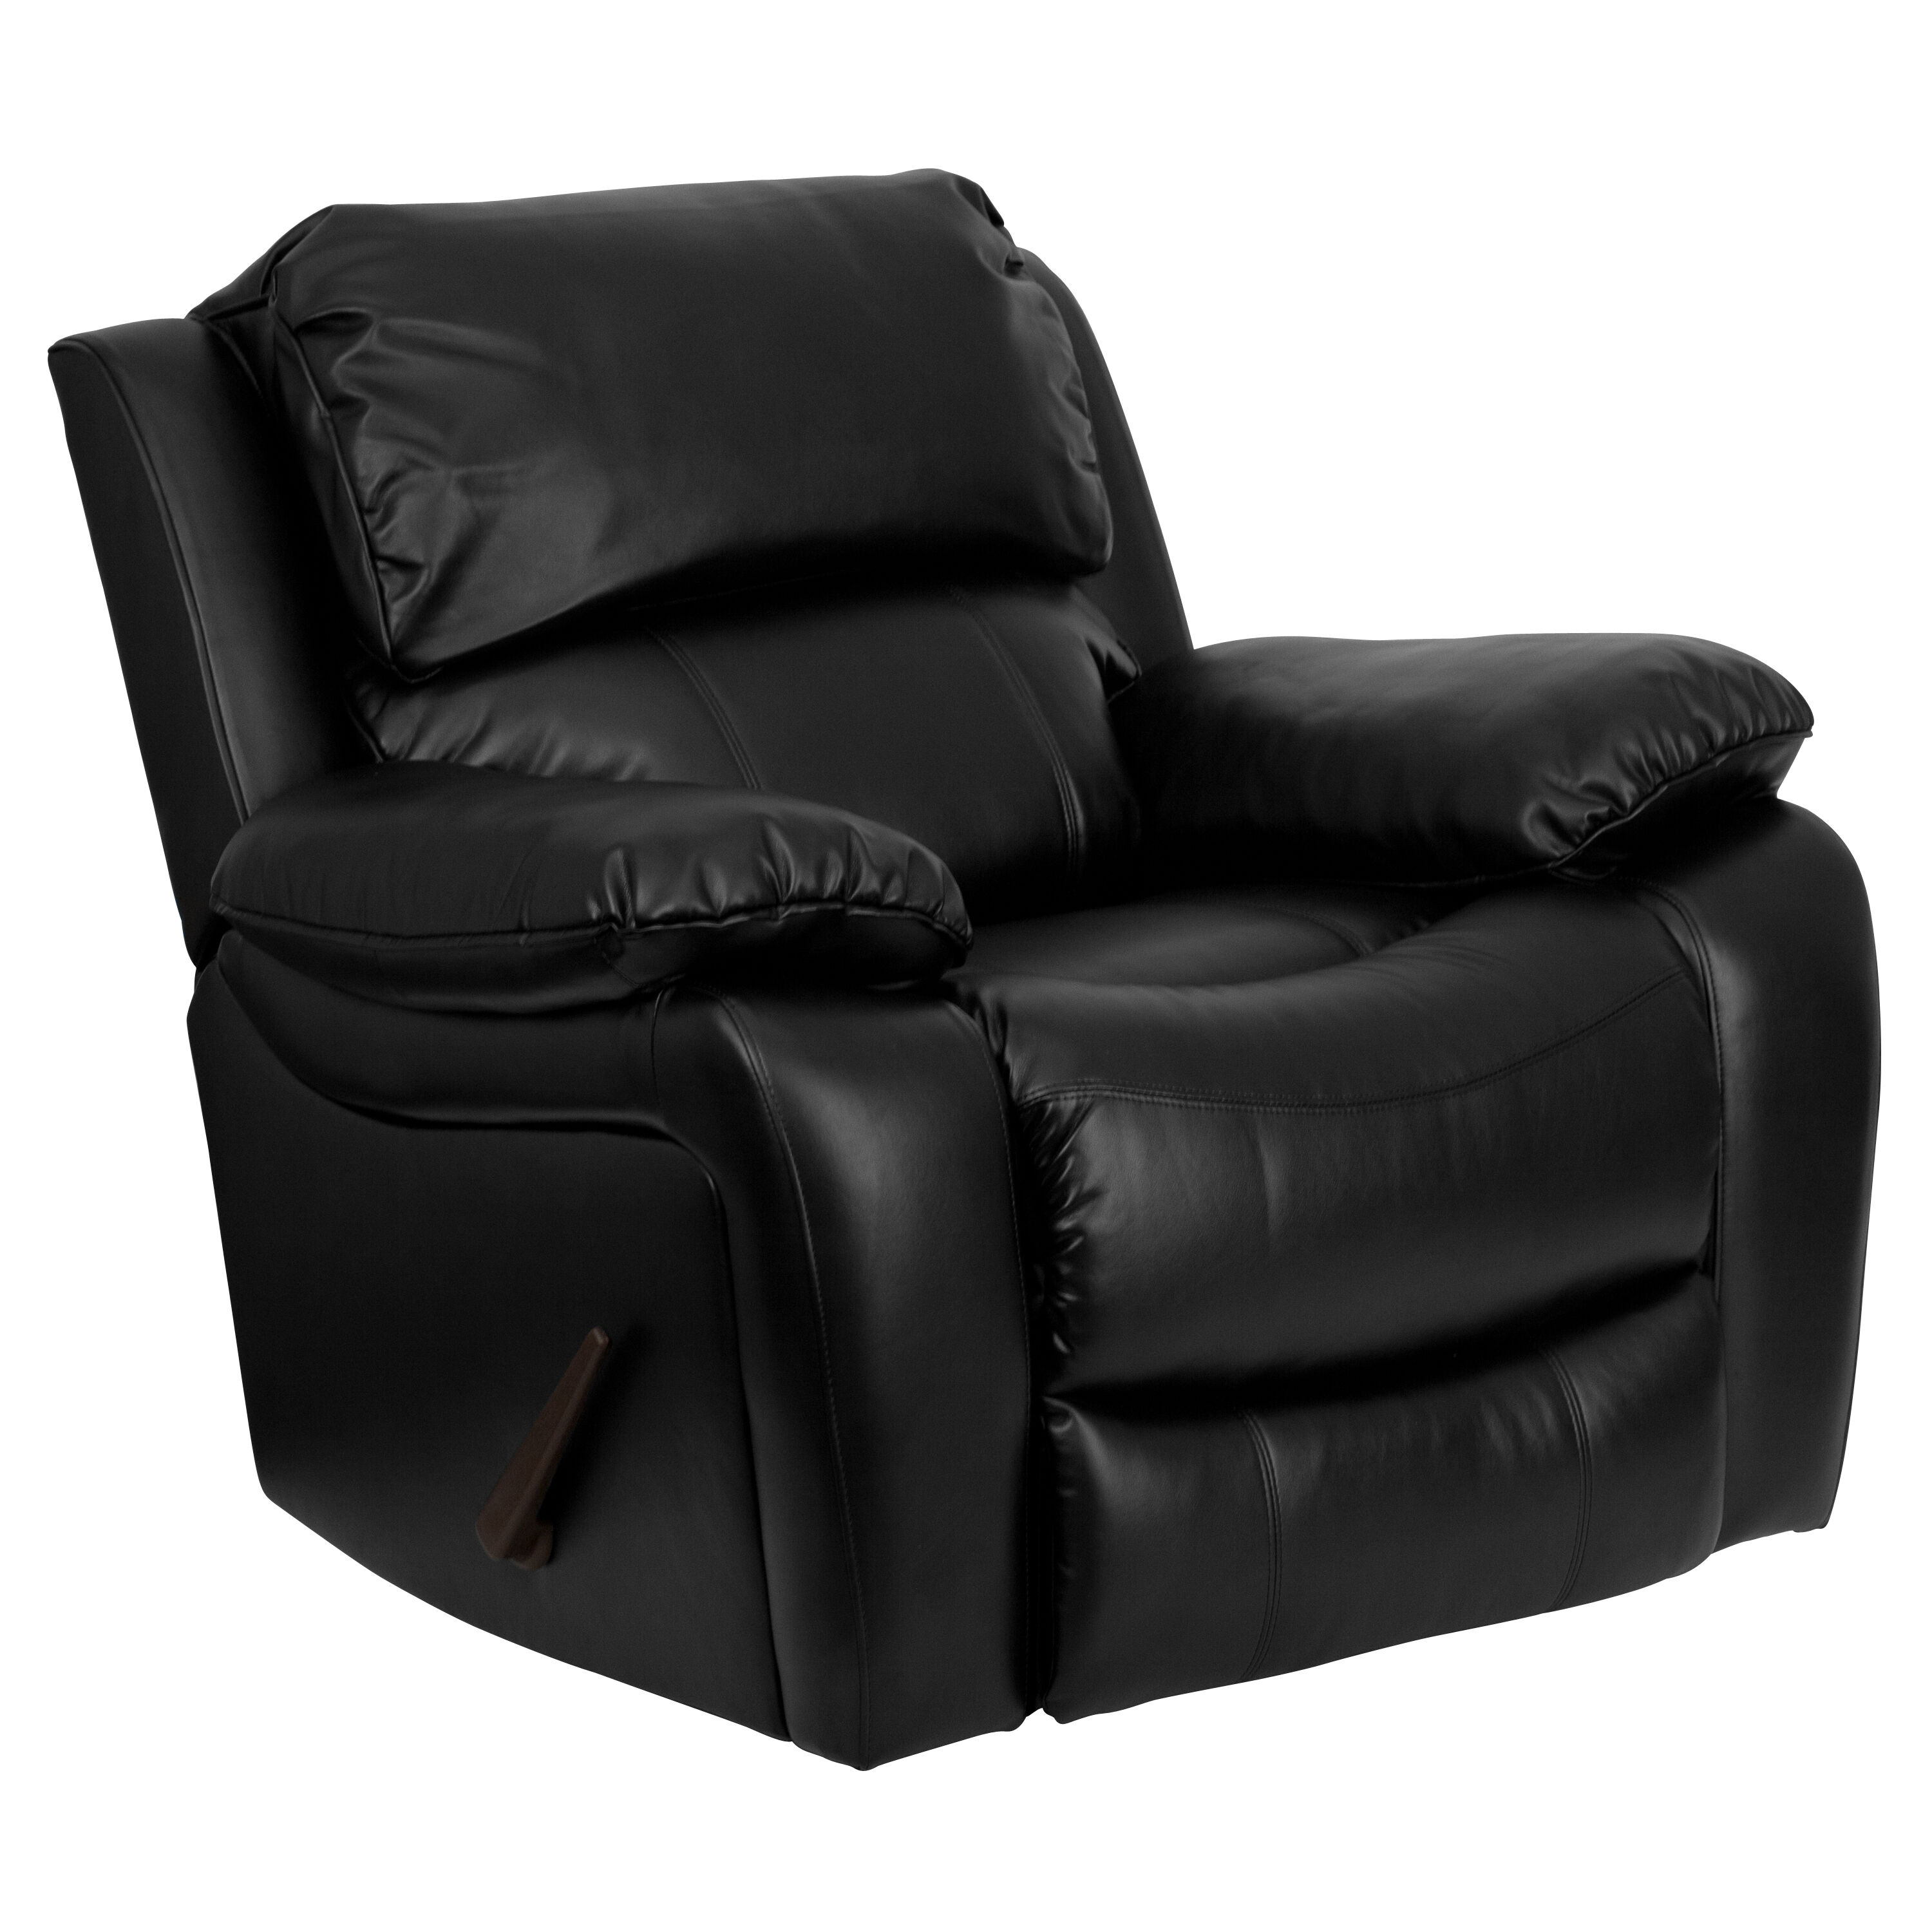 ... Our Black Leather Rocker Recliner Is On Sale Now.